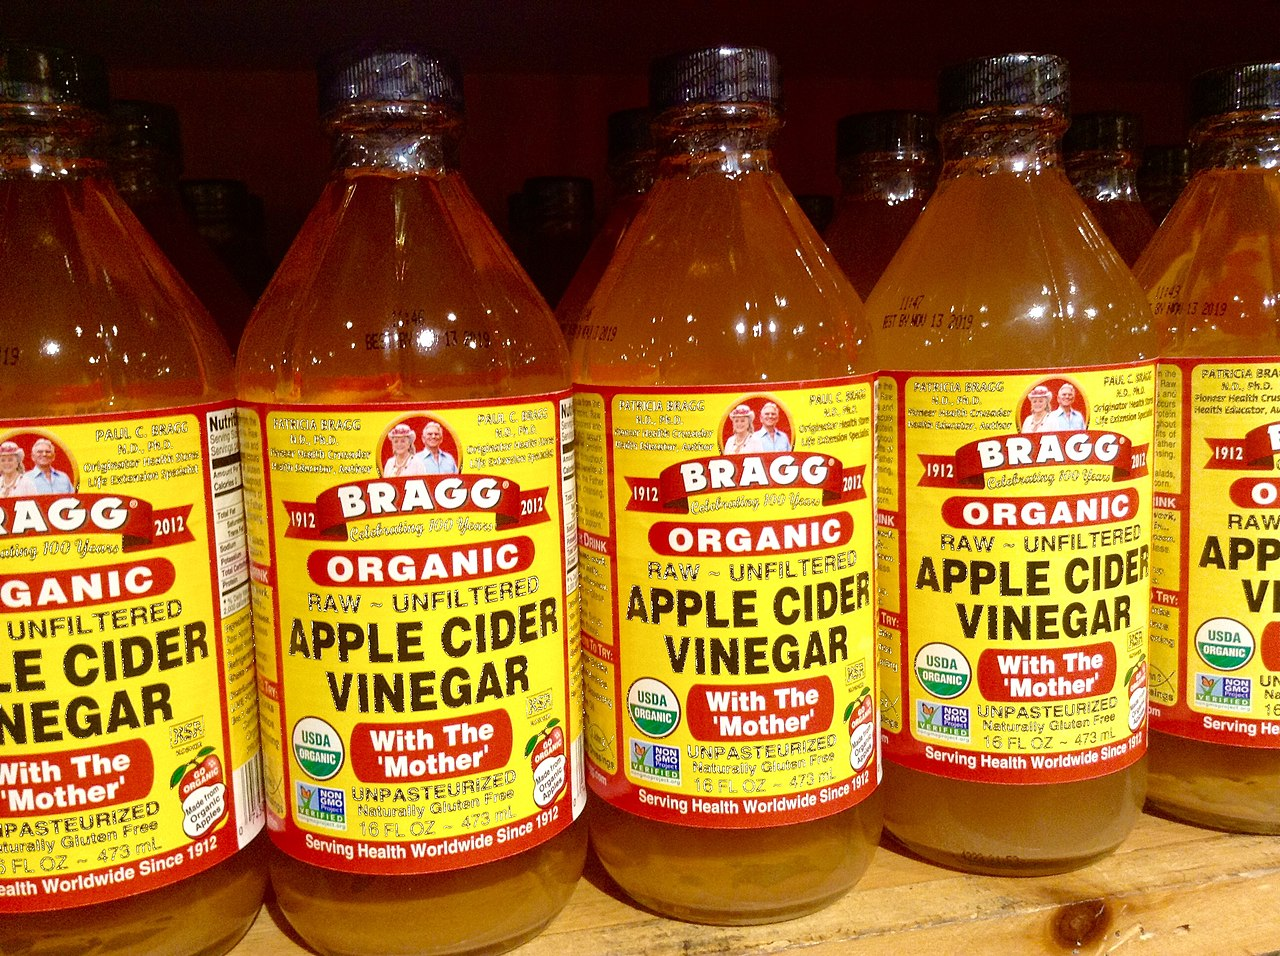 Apple cider vinegar with the mother